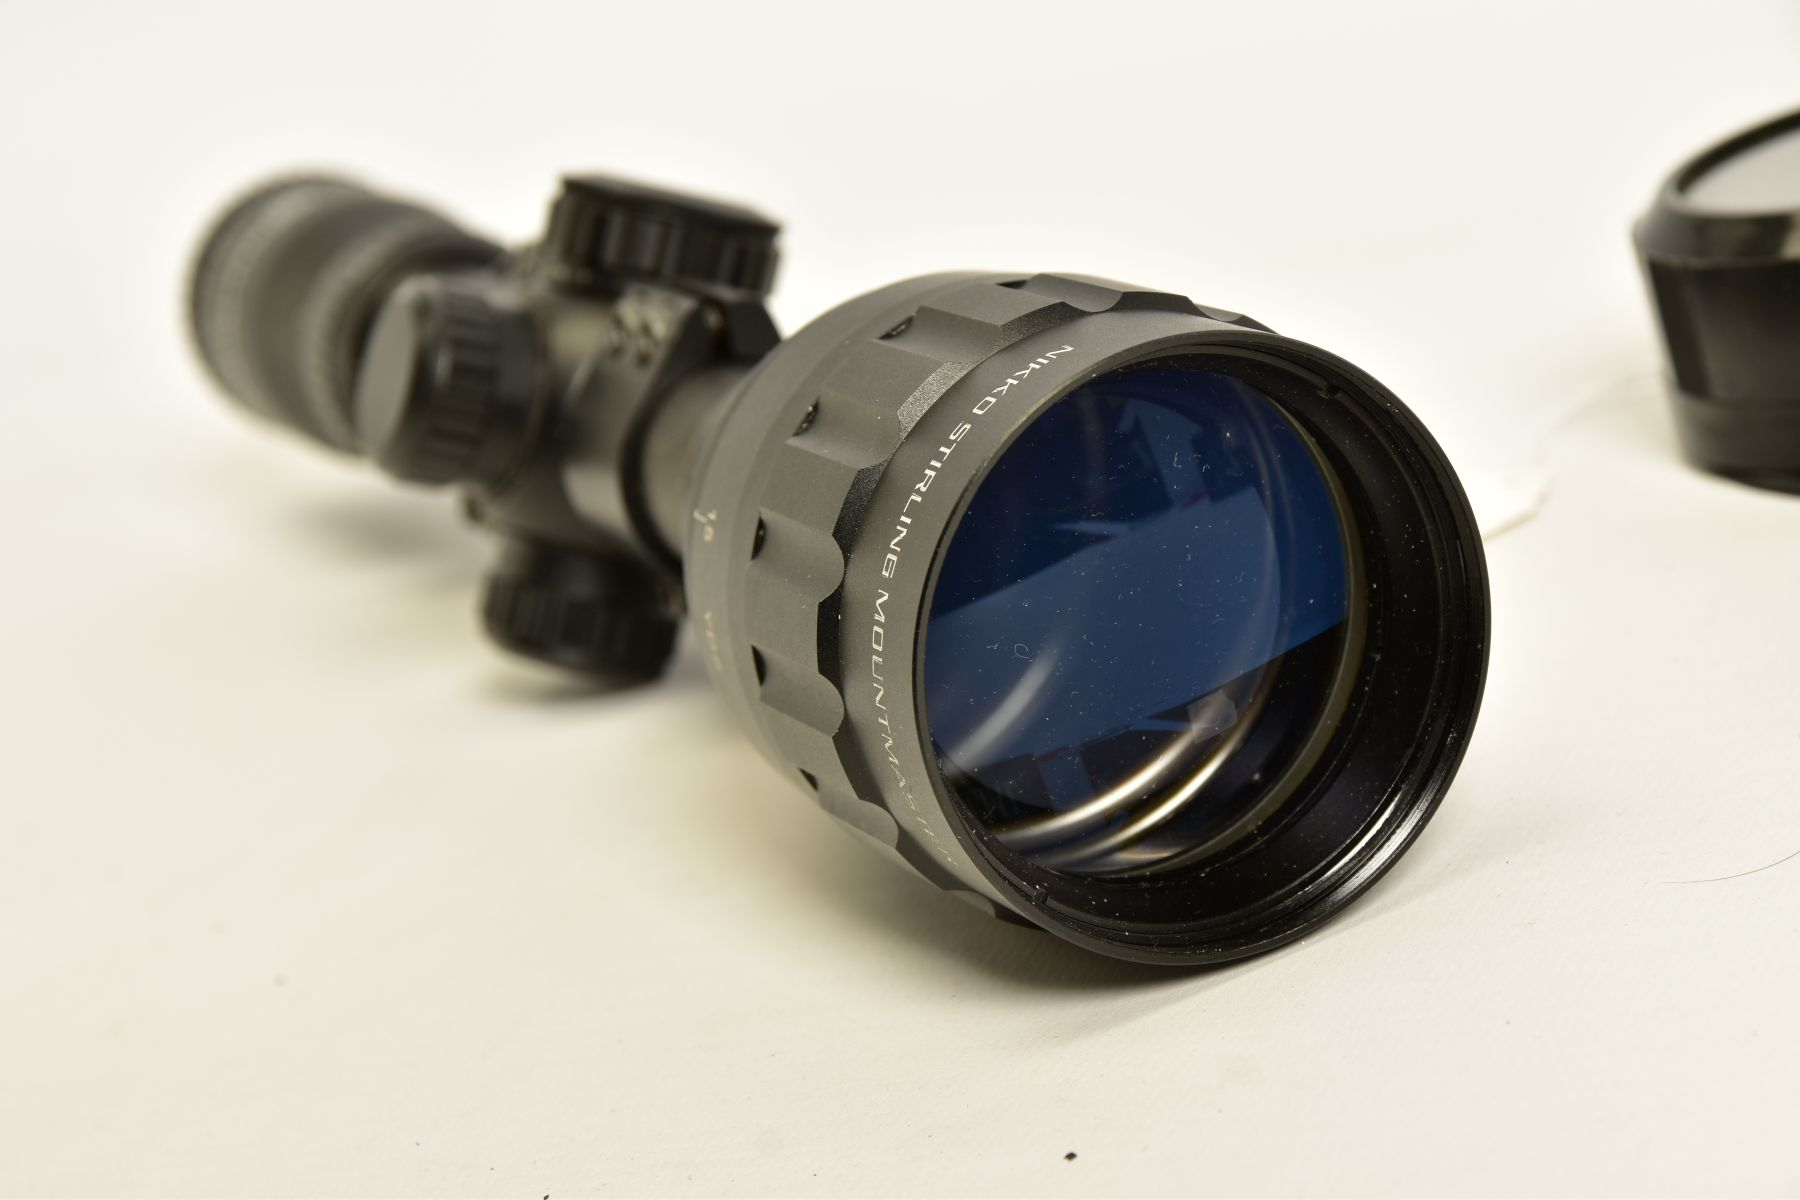 A NIKO STIRLING 3.9 X 50 RIFLE SCOPE and mounts, it appears to be in unused condition - Image 5 of 8